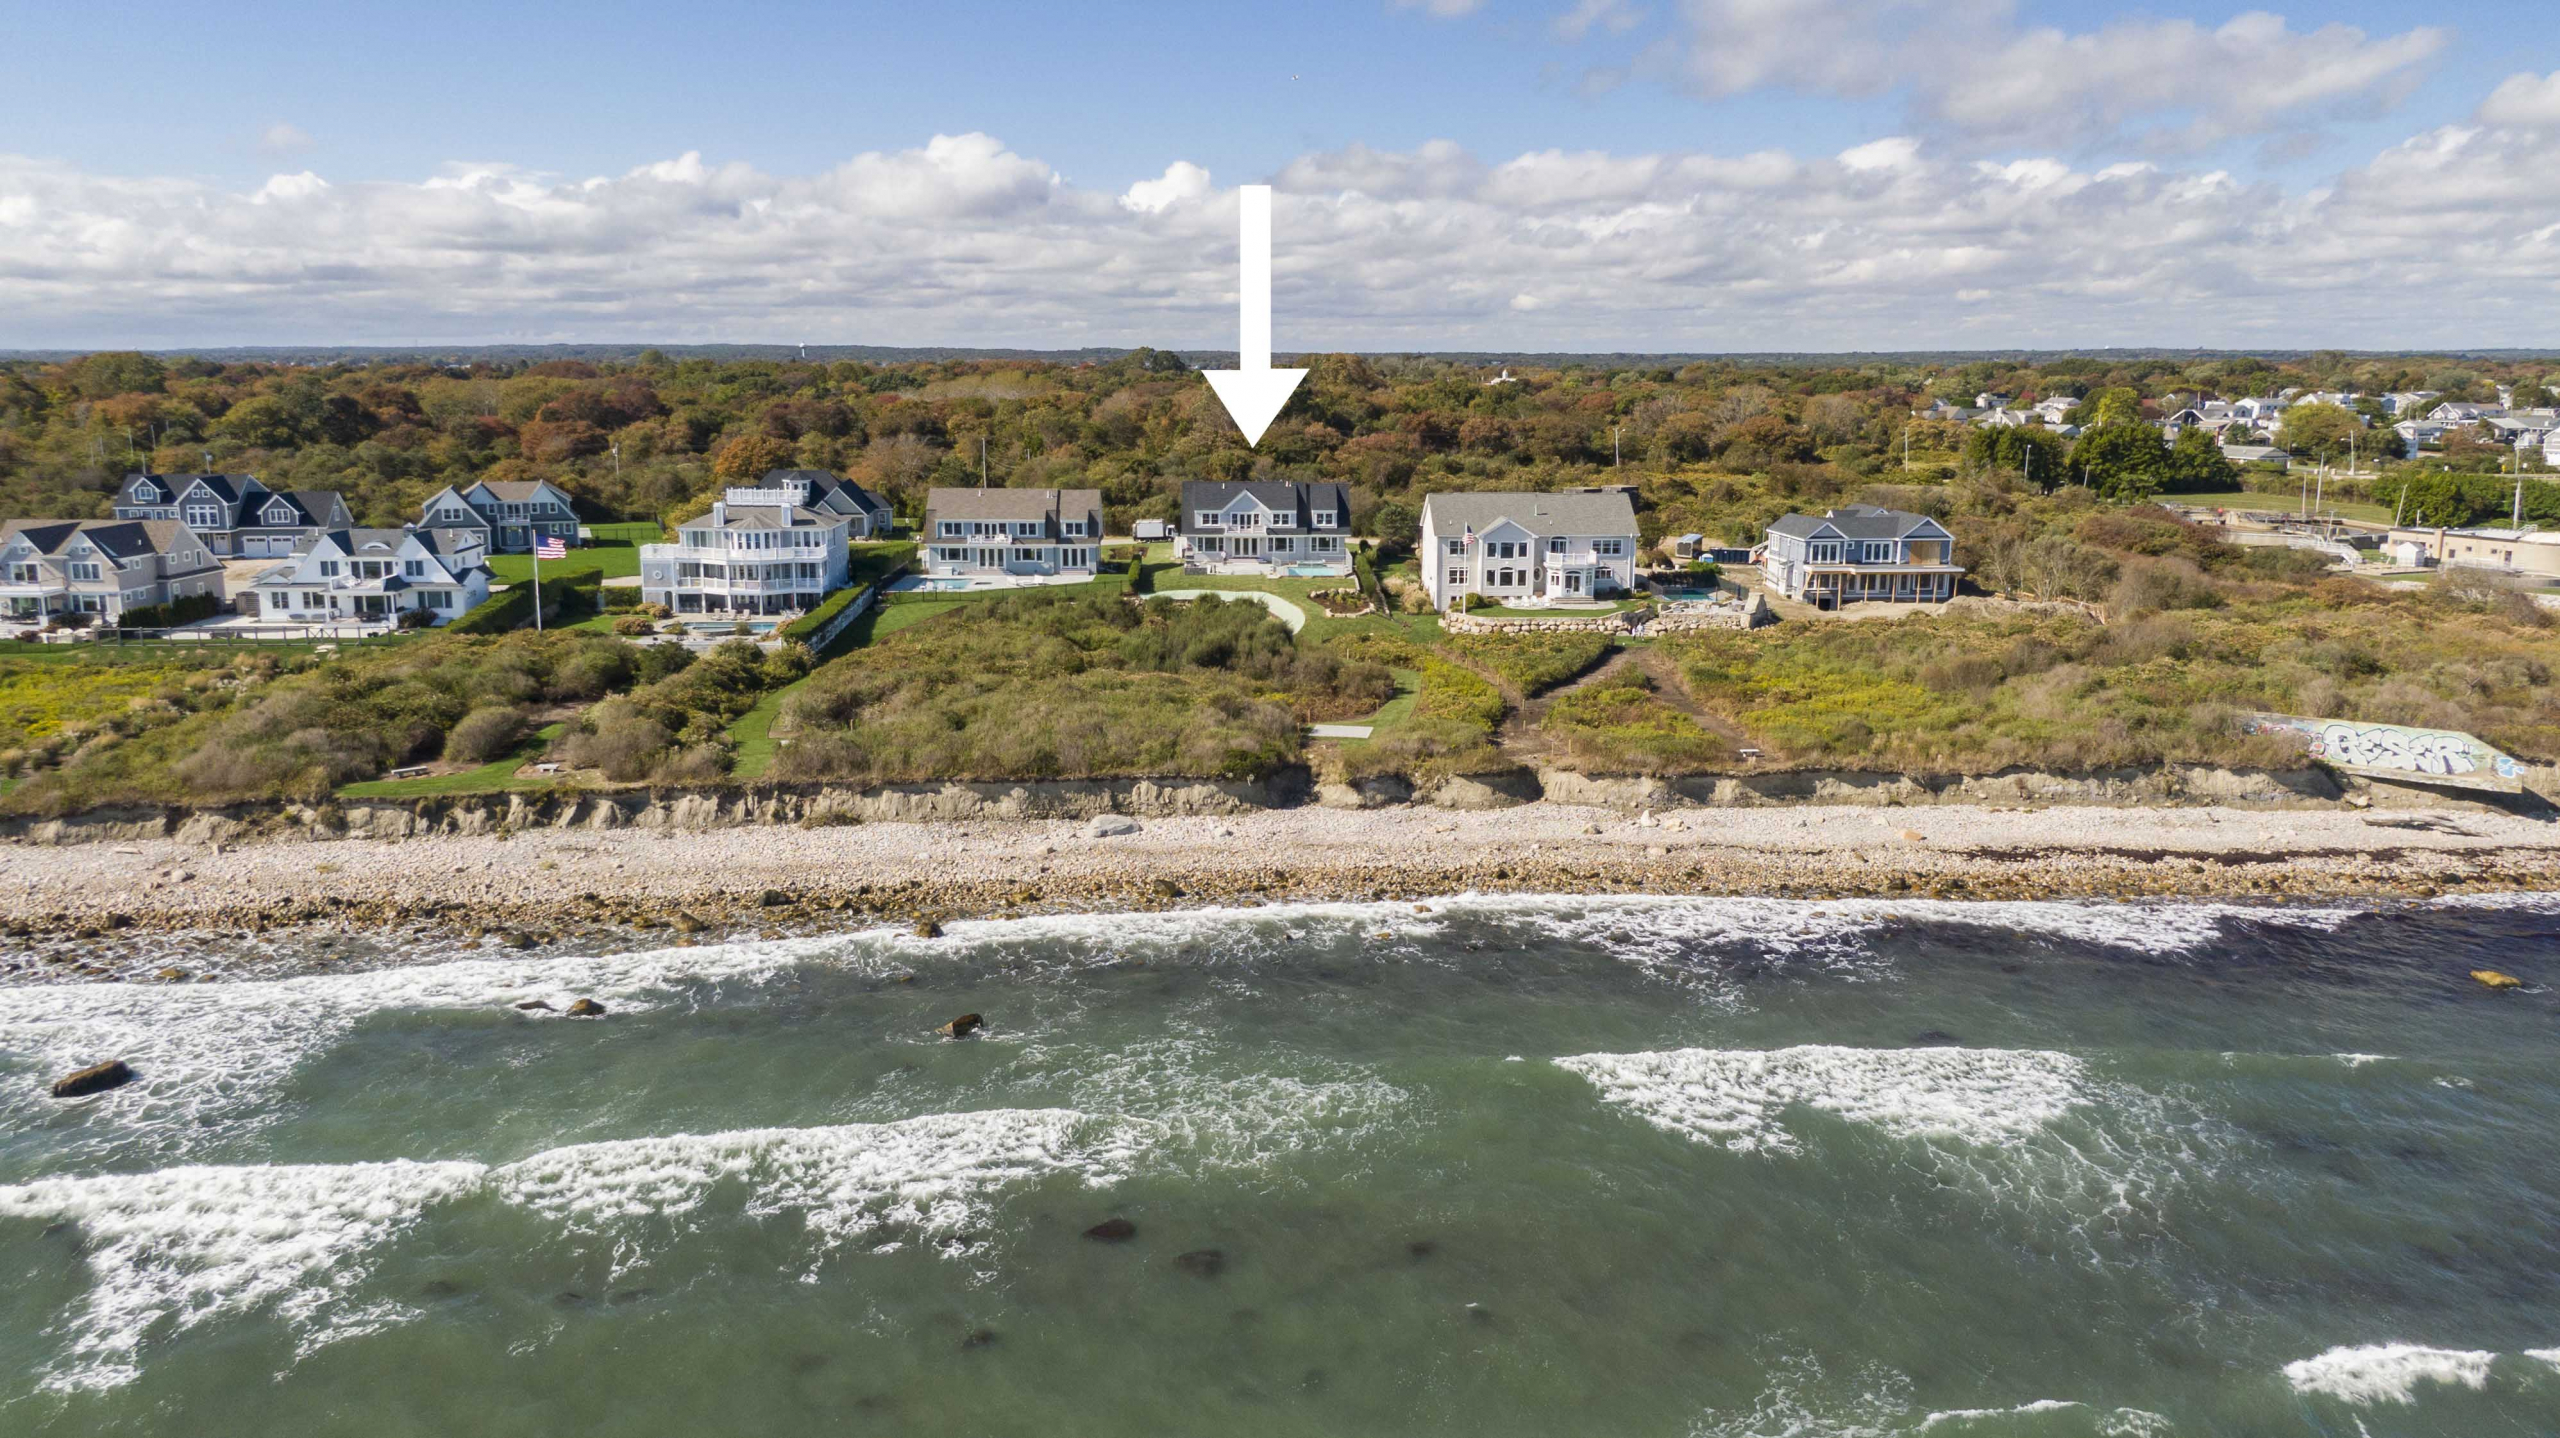 WATERFRONT NEW CONTRUCTION ON OCEAN ROAD SELLS FOR $3,332,812